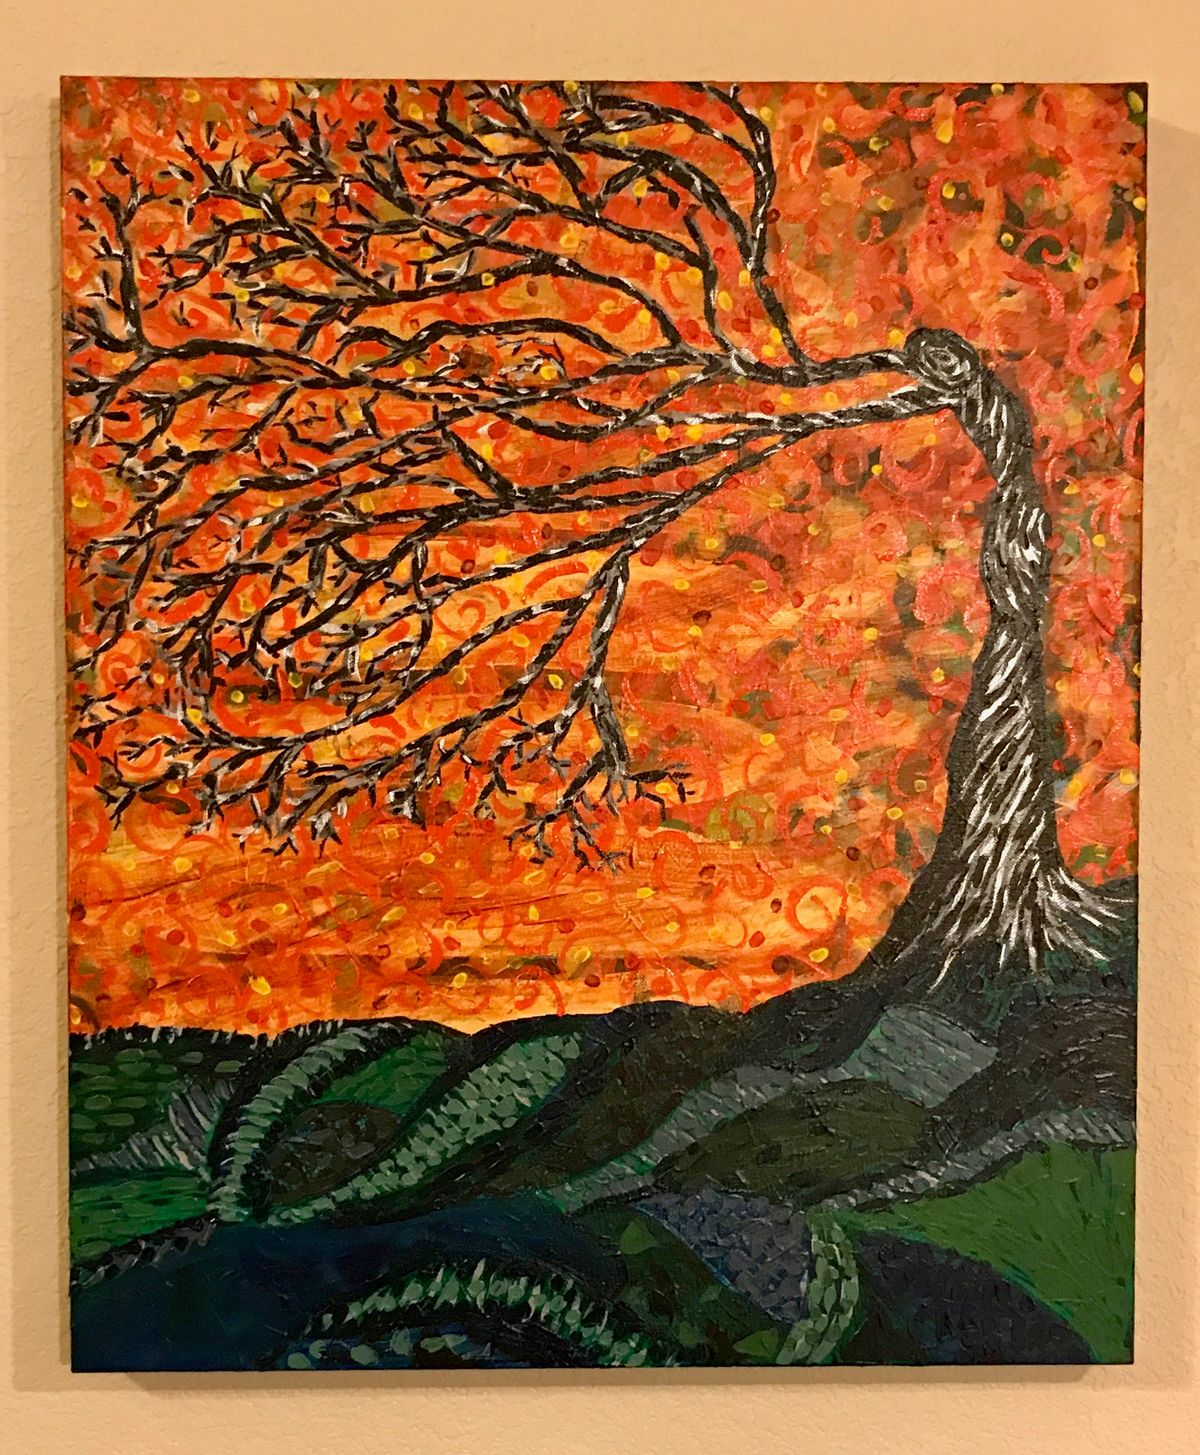 1_Beth Anne_Middlebrooks_The Nature of Bending and Not Breaking_Austin Art_Austin Artist_Austin Gifts.JPEG